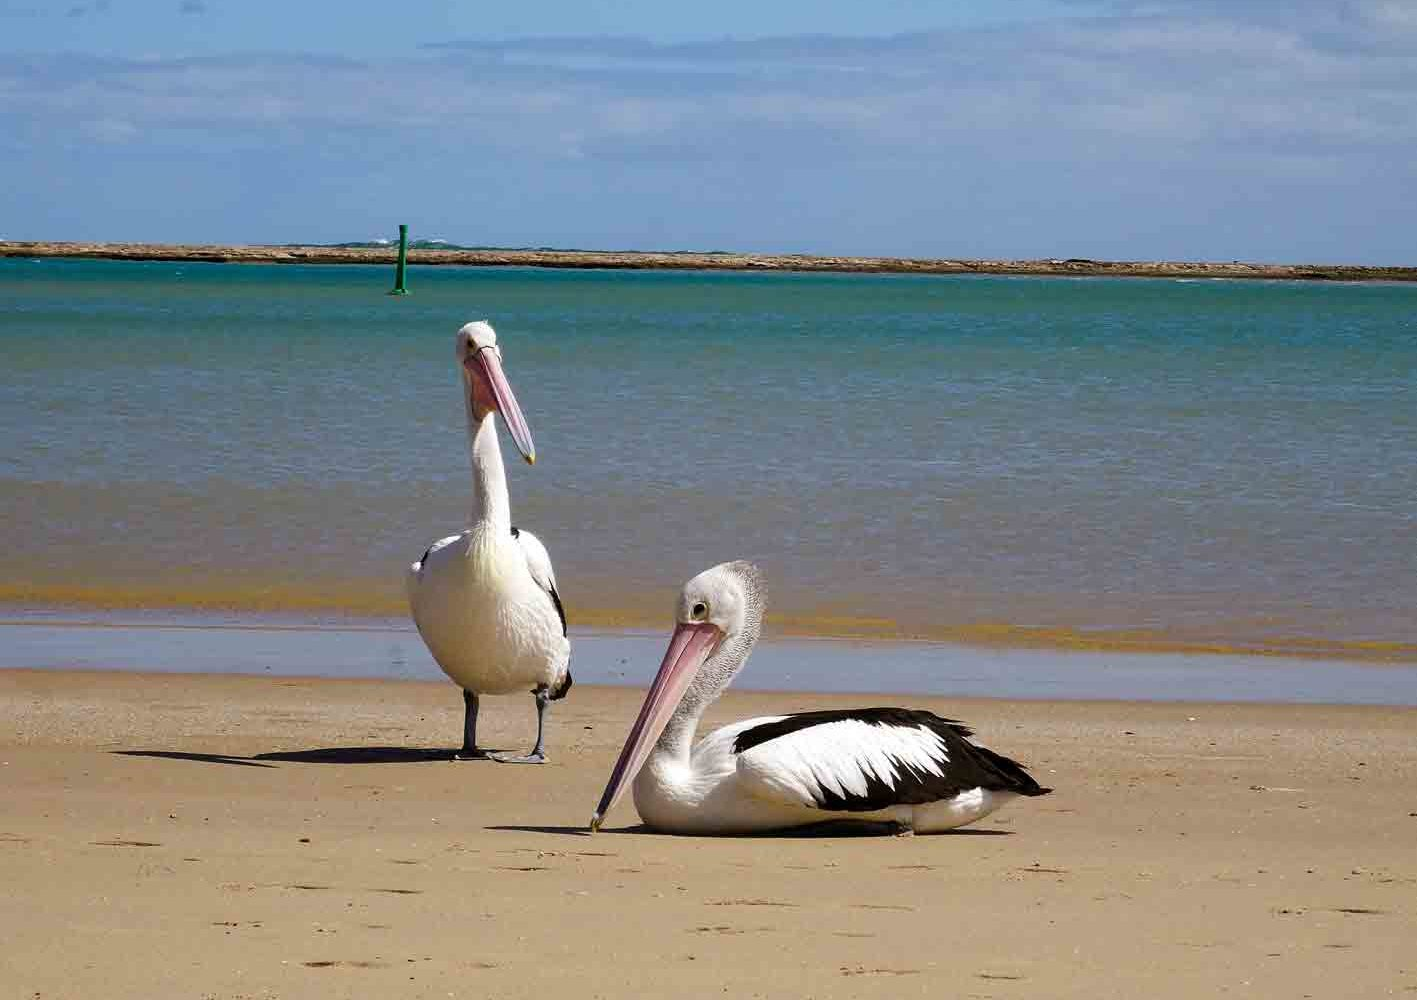 Pelikane am Strand, West-Australien